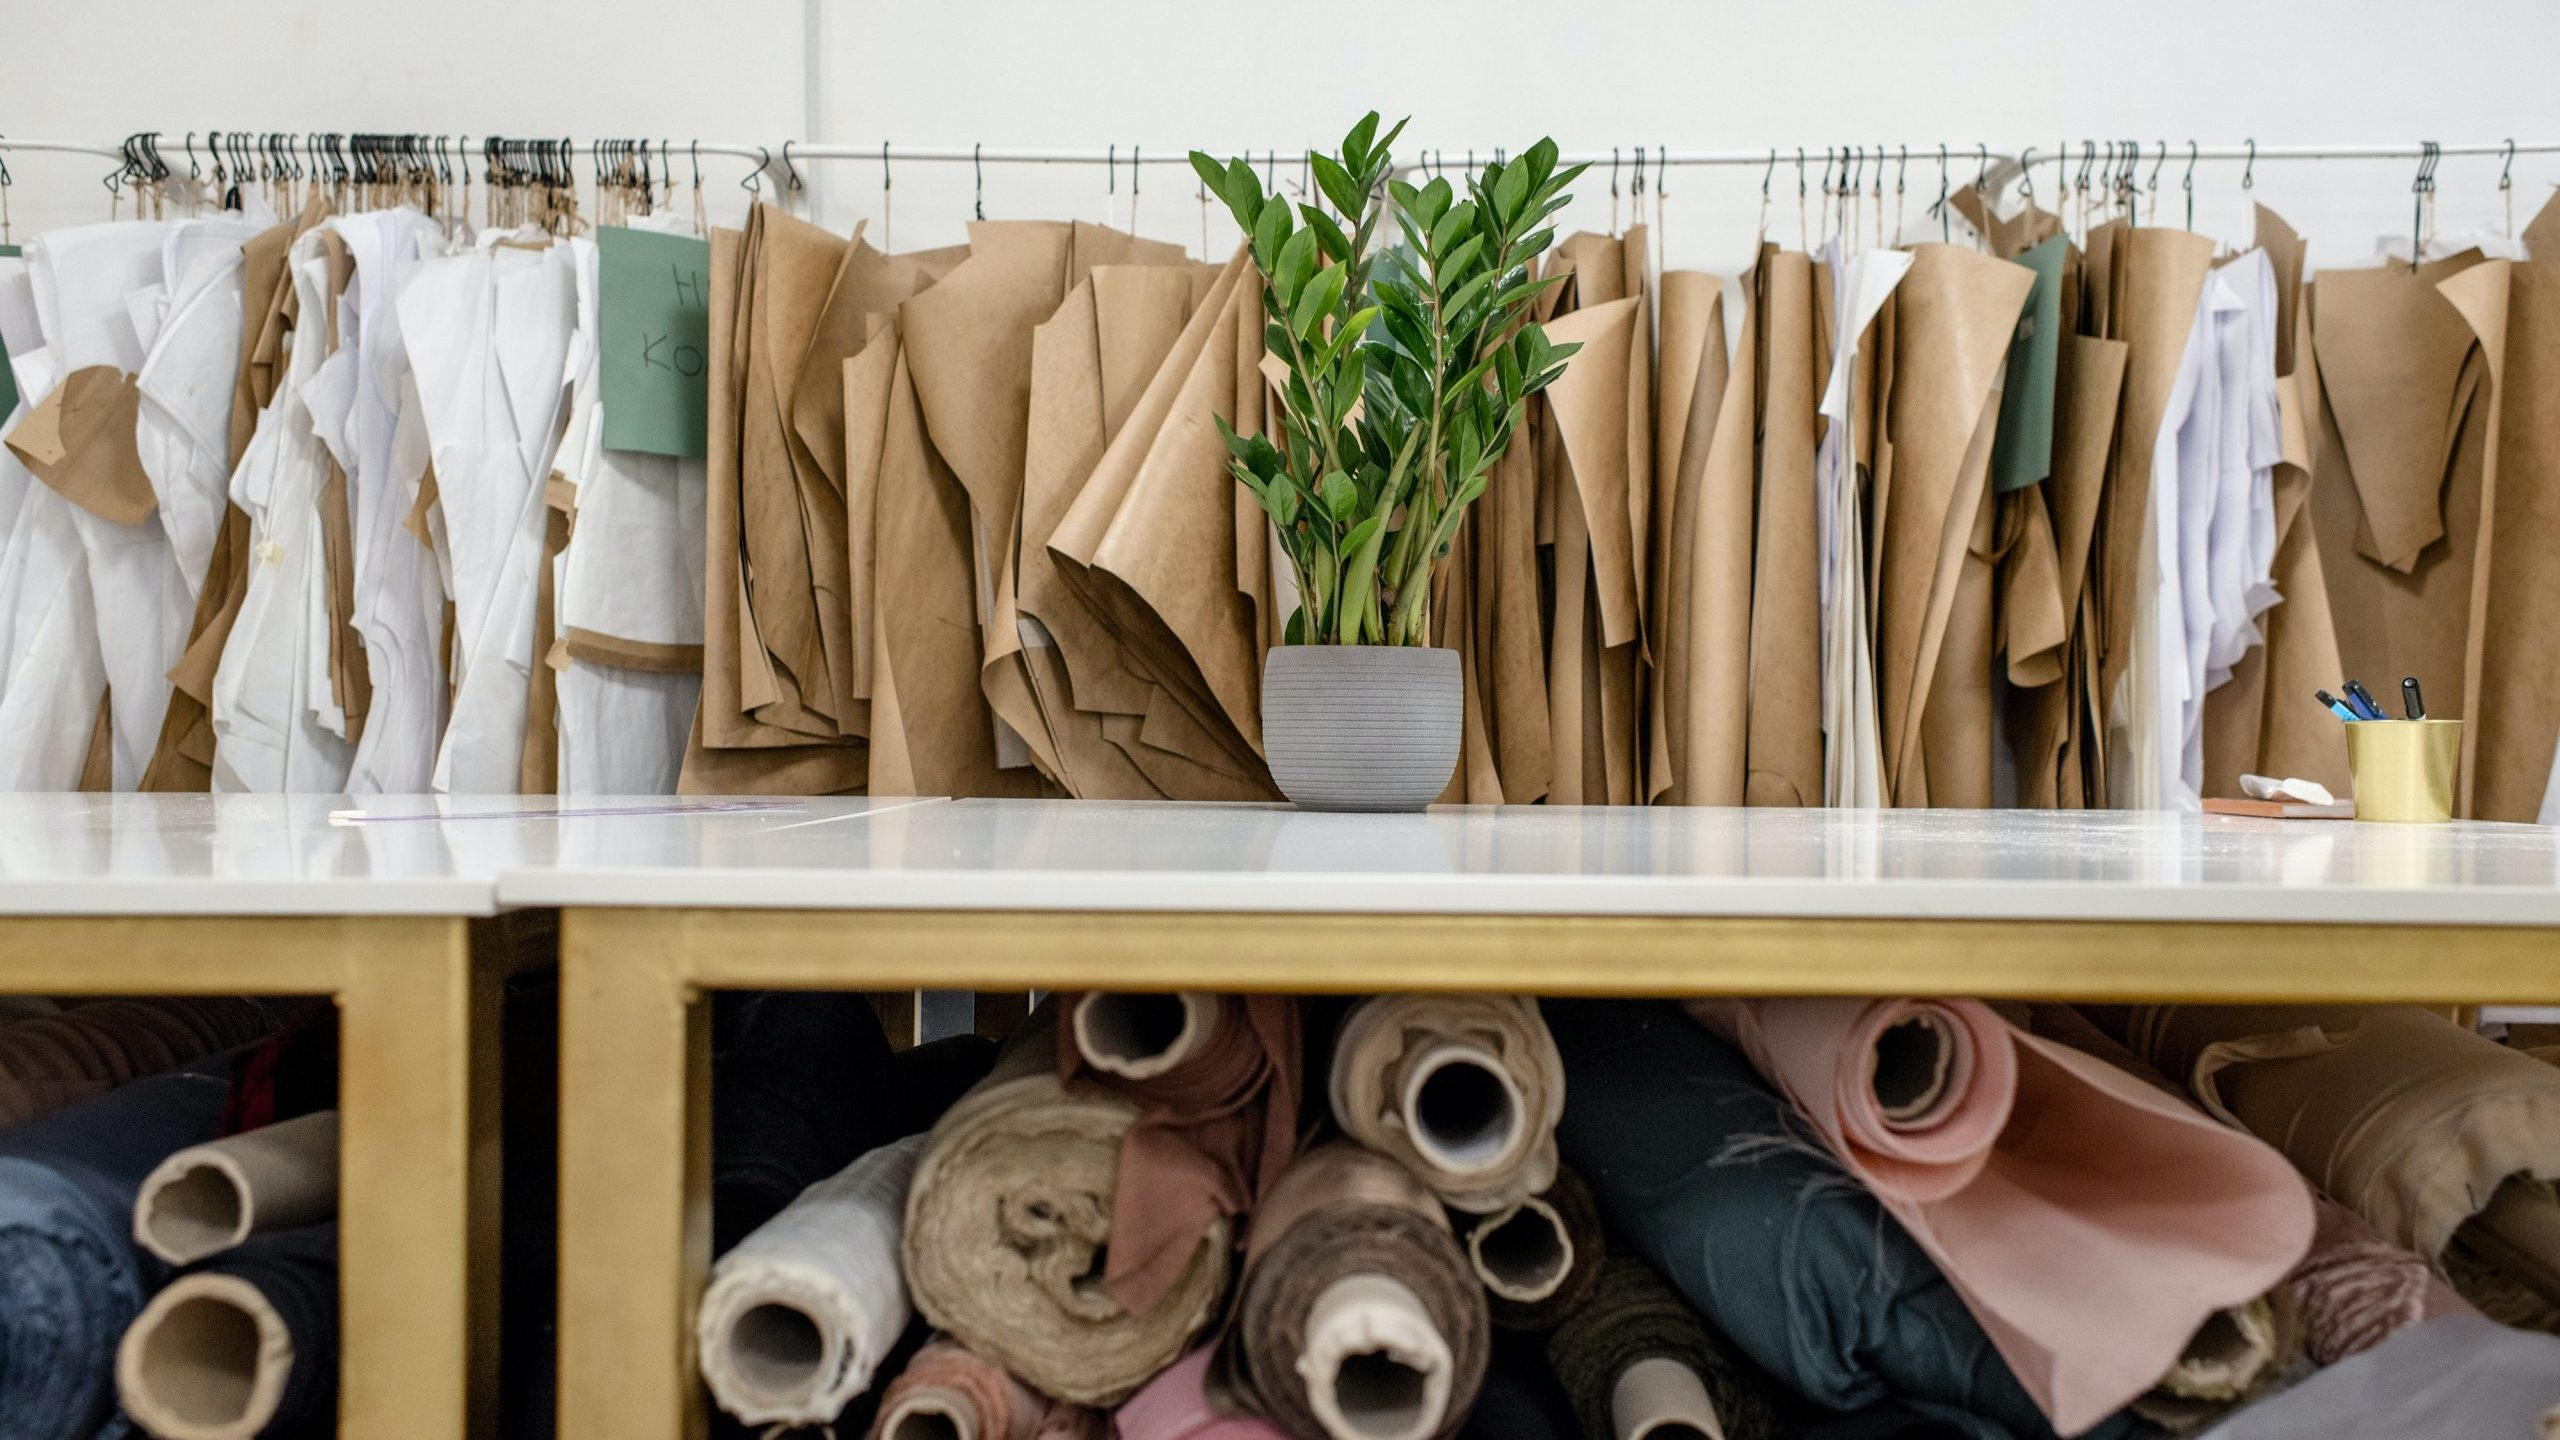 new textiles for sustainable fashion